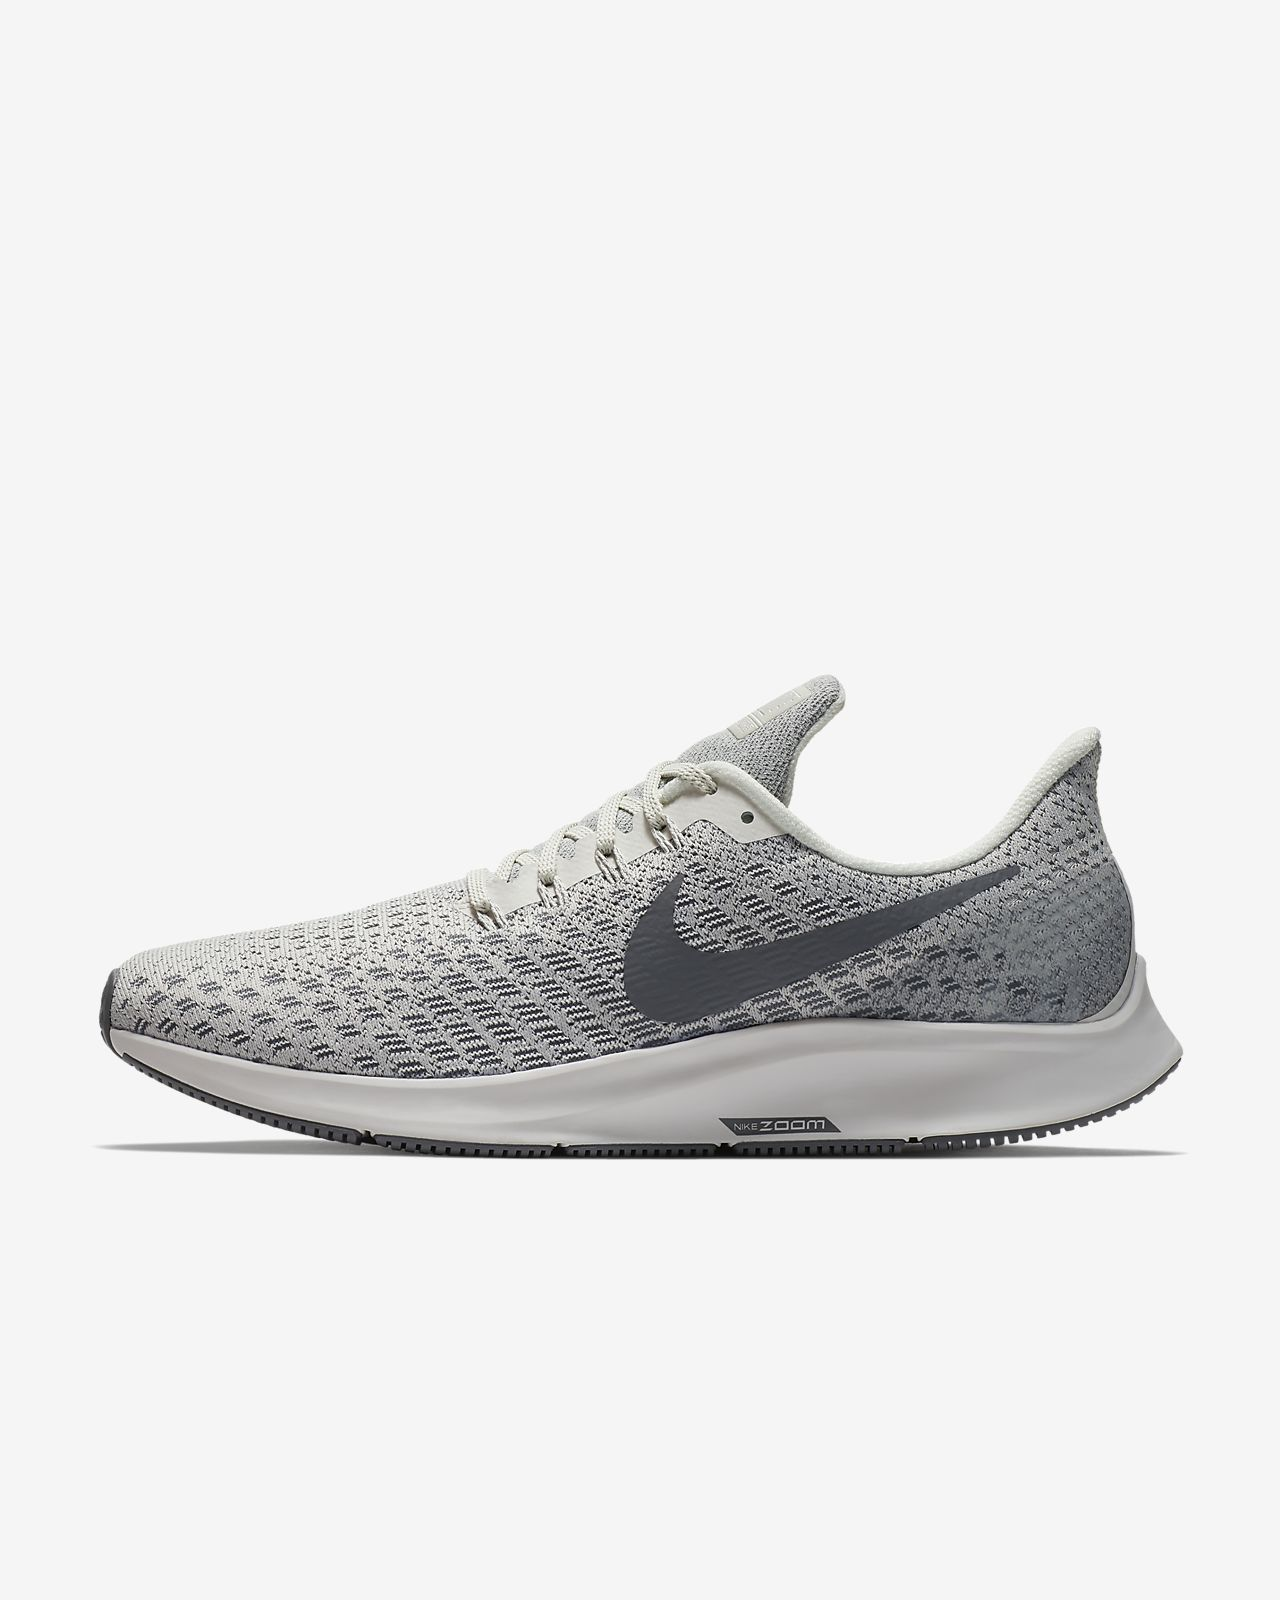 a333393d86d4 Nike Air Zoom Pegasus 35 Men s Running Shoe. Nike.com